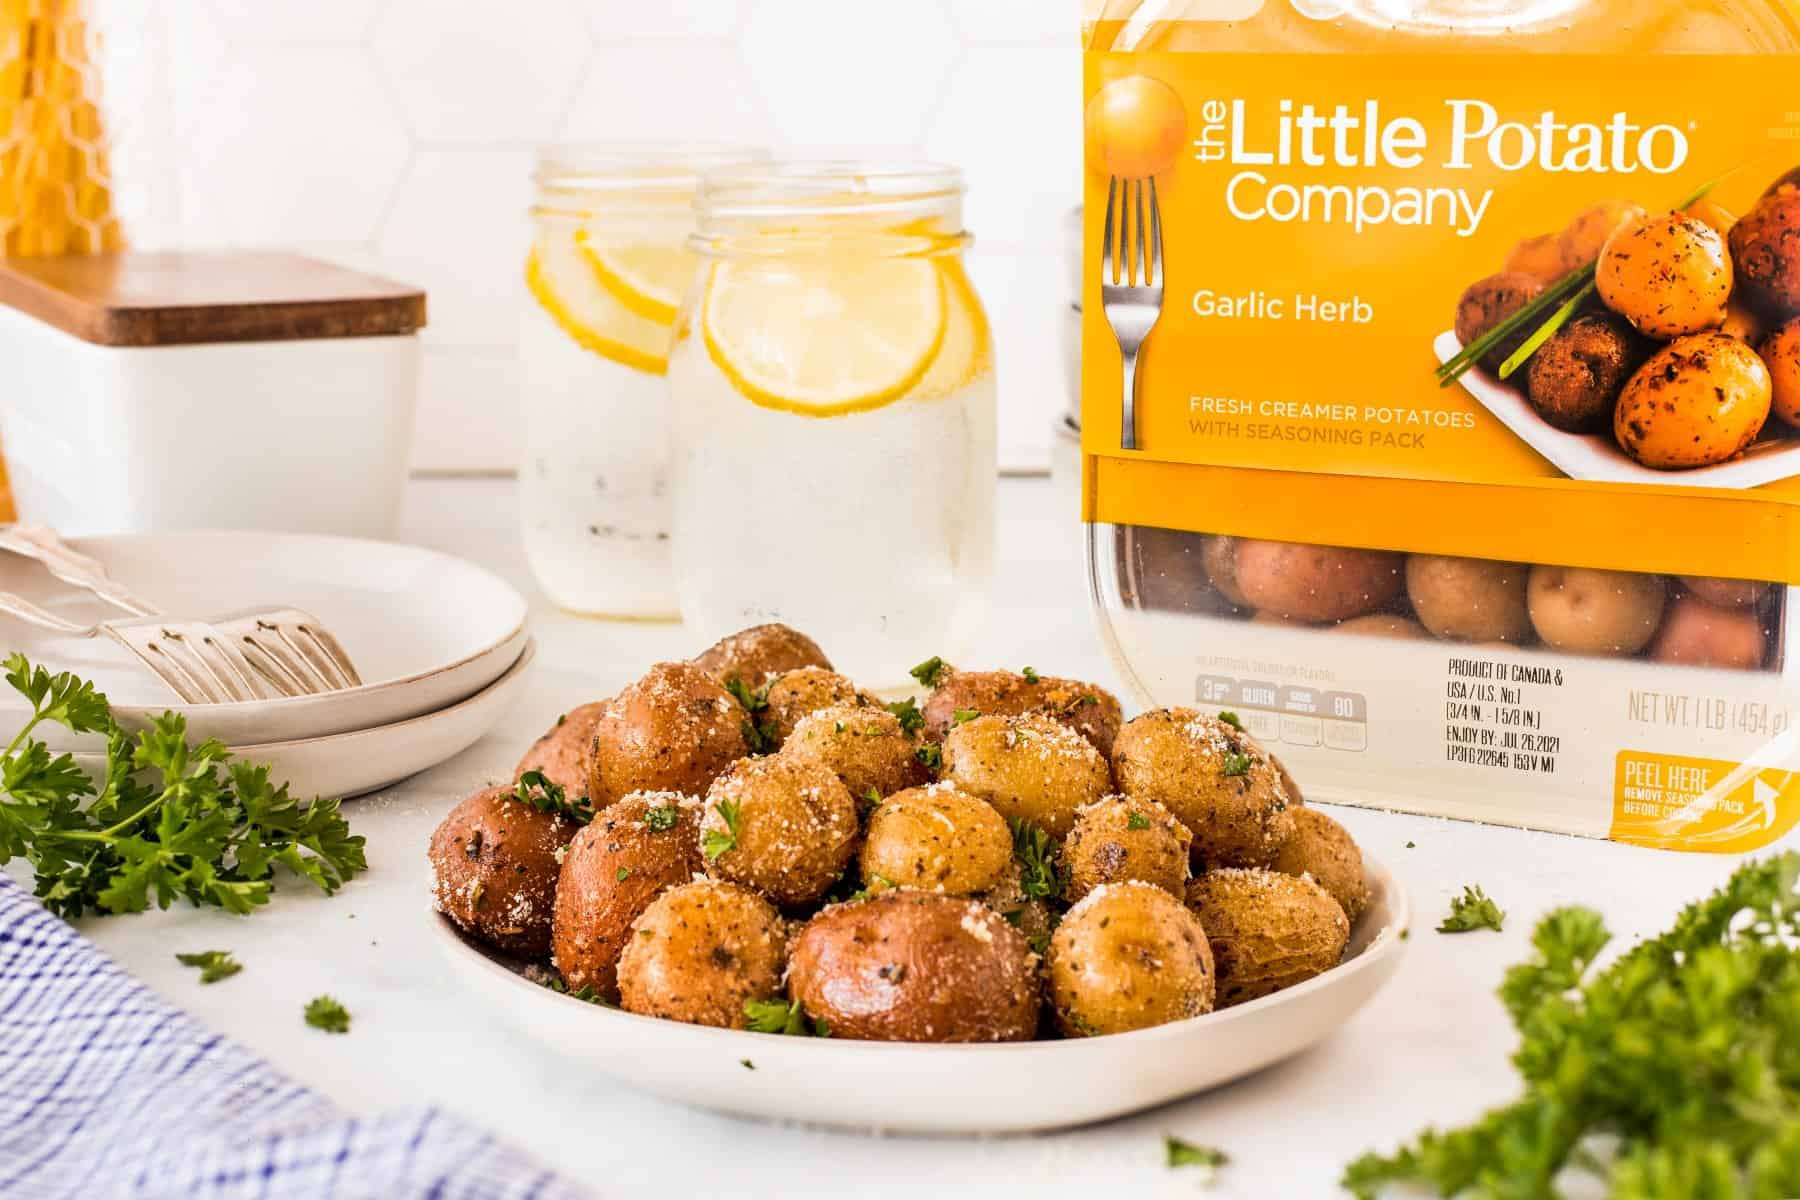 Potatoes on a plate with a package of potatoes behind from Little Potato Company.